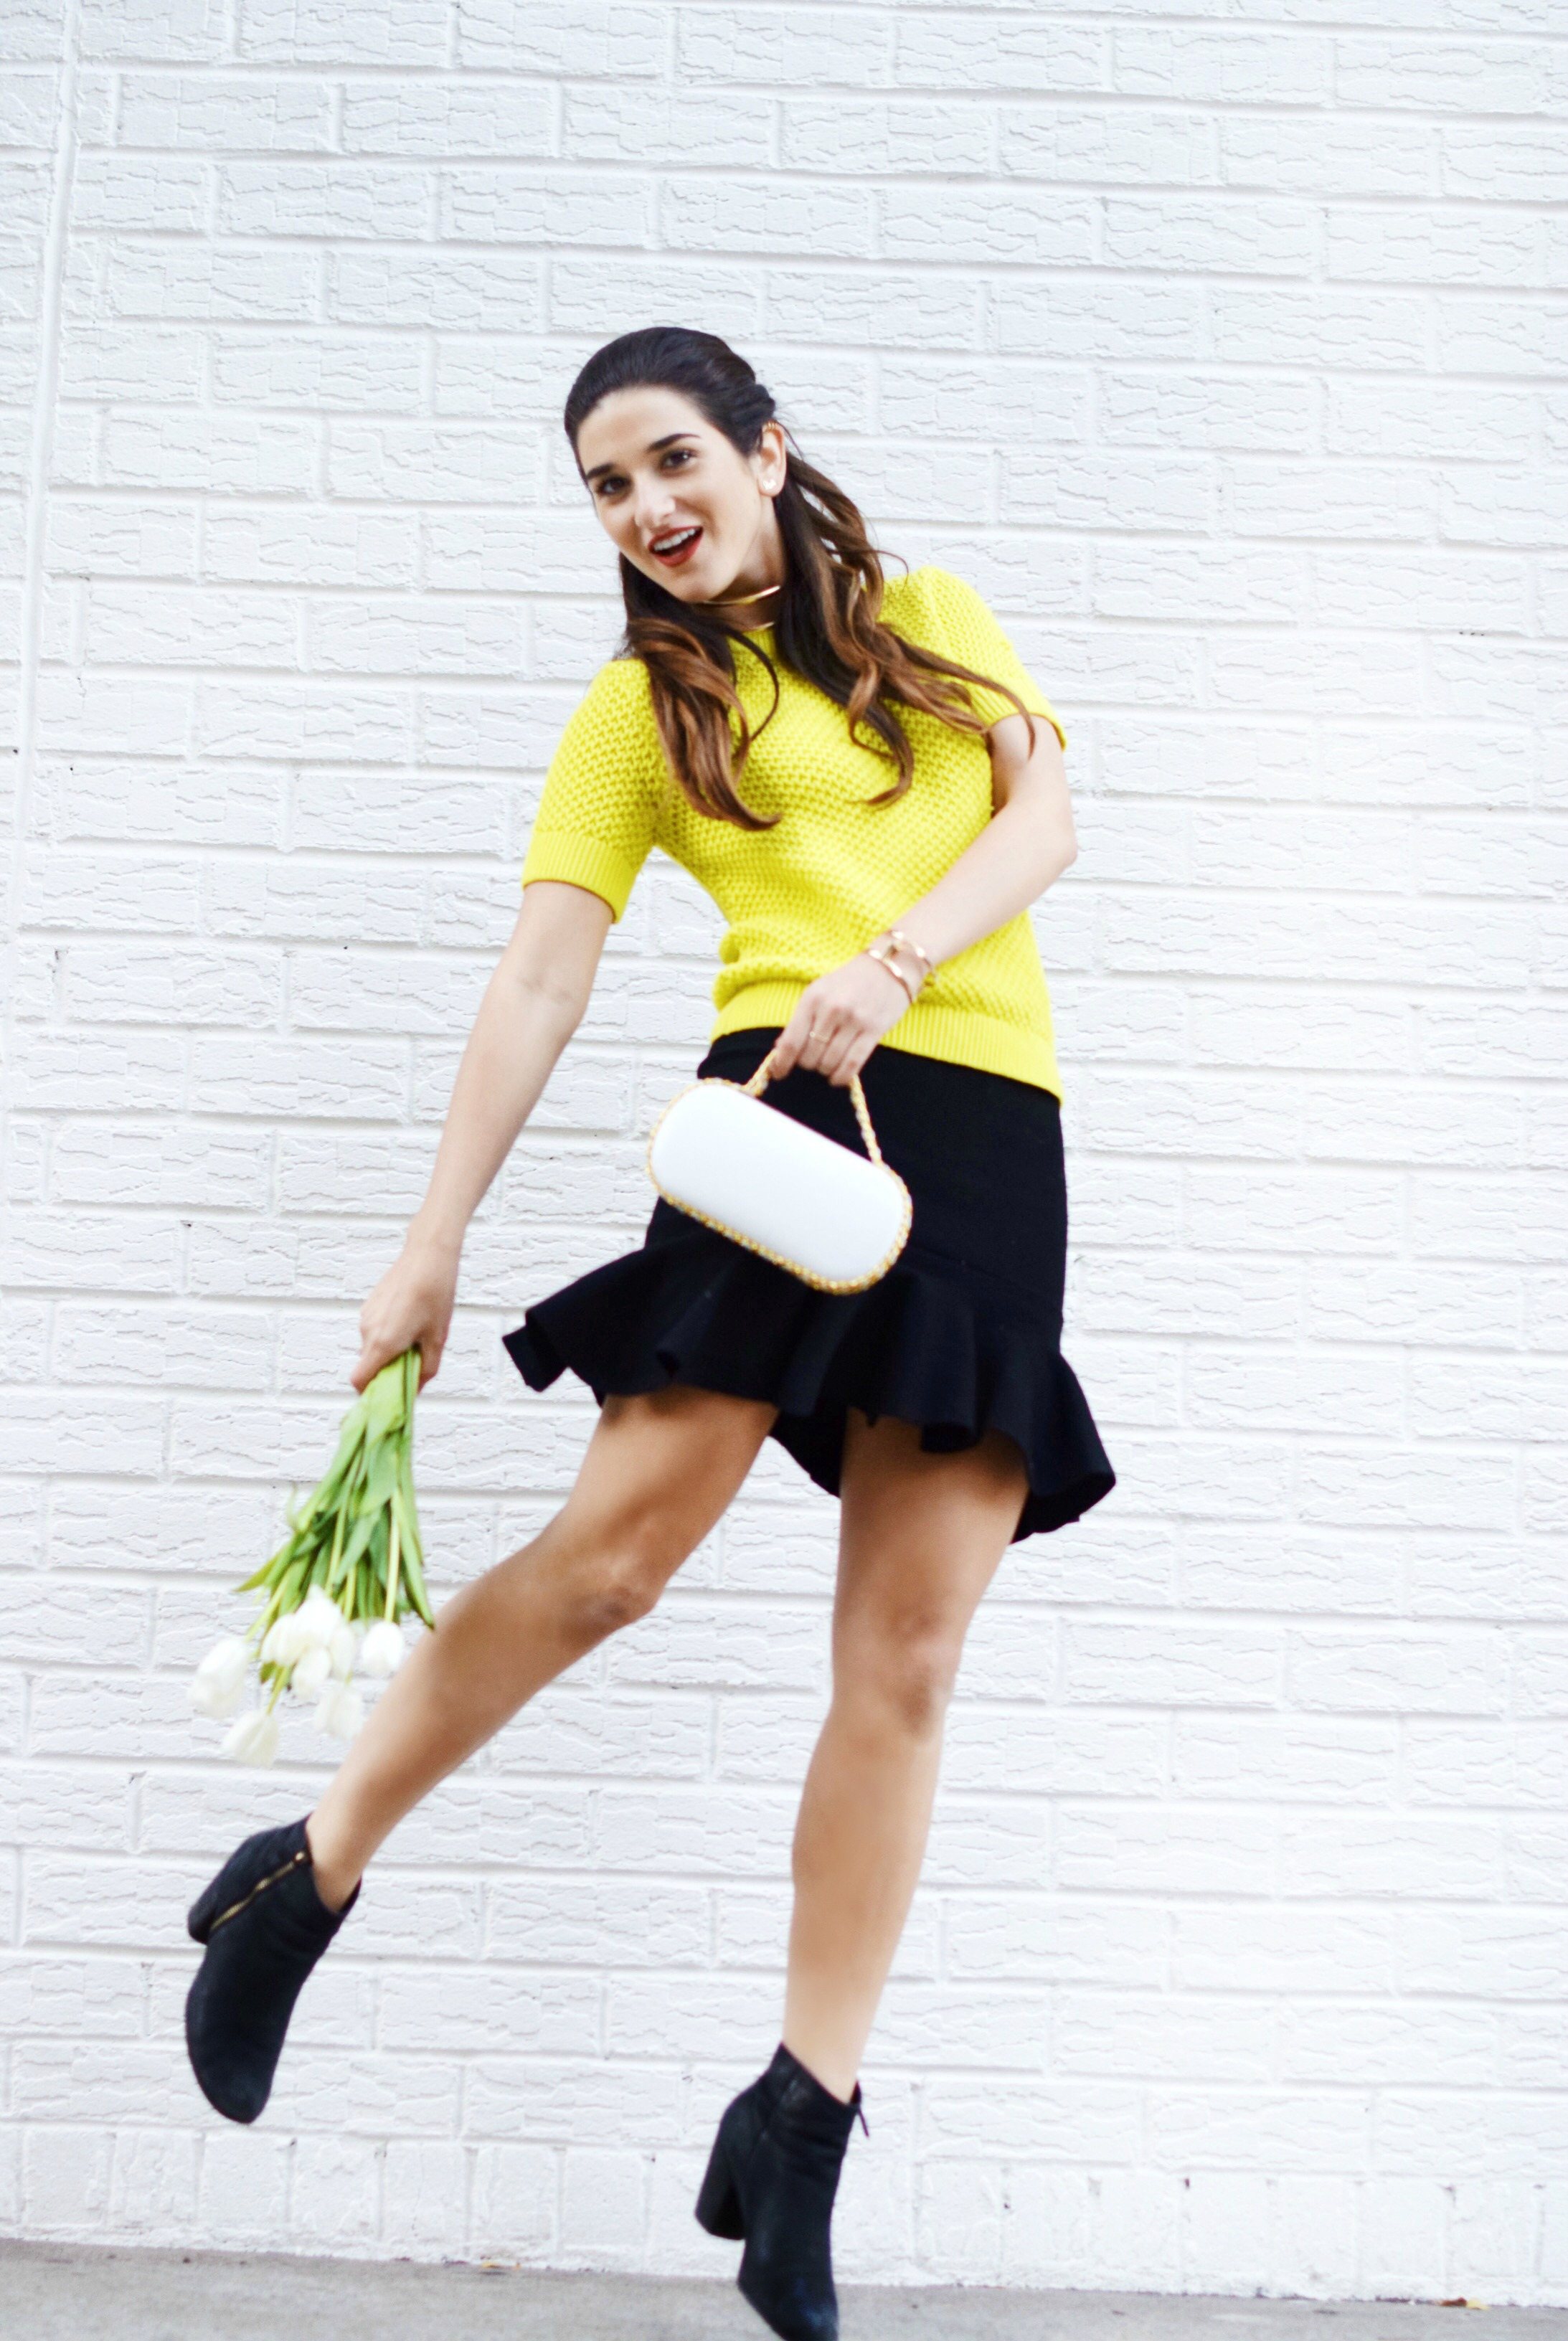 White Prince Minaudiere Erin Dana Louboutins & Love Fashion Blog Esther Santer NYC Street Style Blogger Bag Giveaway Gold Jewelry Lydell Bracelet Collar Necklace Black Booties Flared Ruffle Skirt Neon Yellow Sweater Club Monaco Model Photoshoot Outfit.jpg